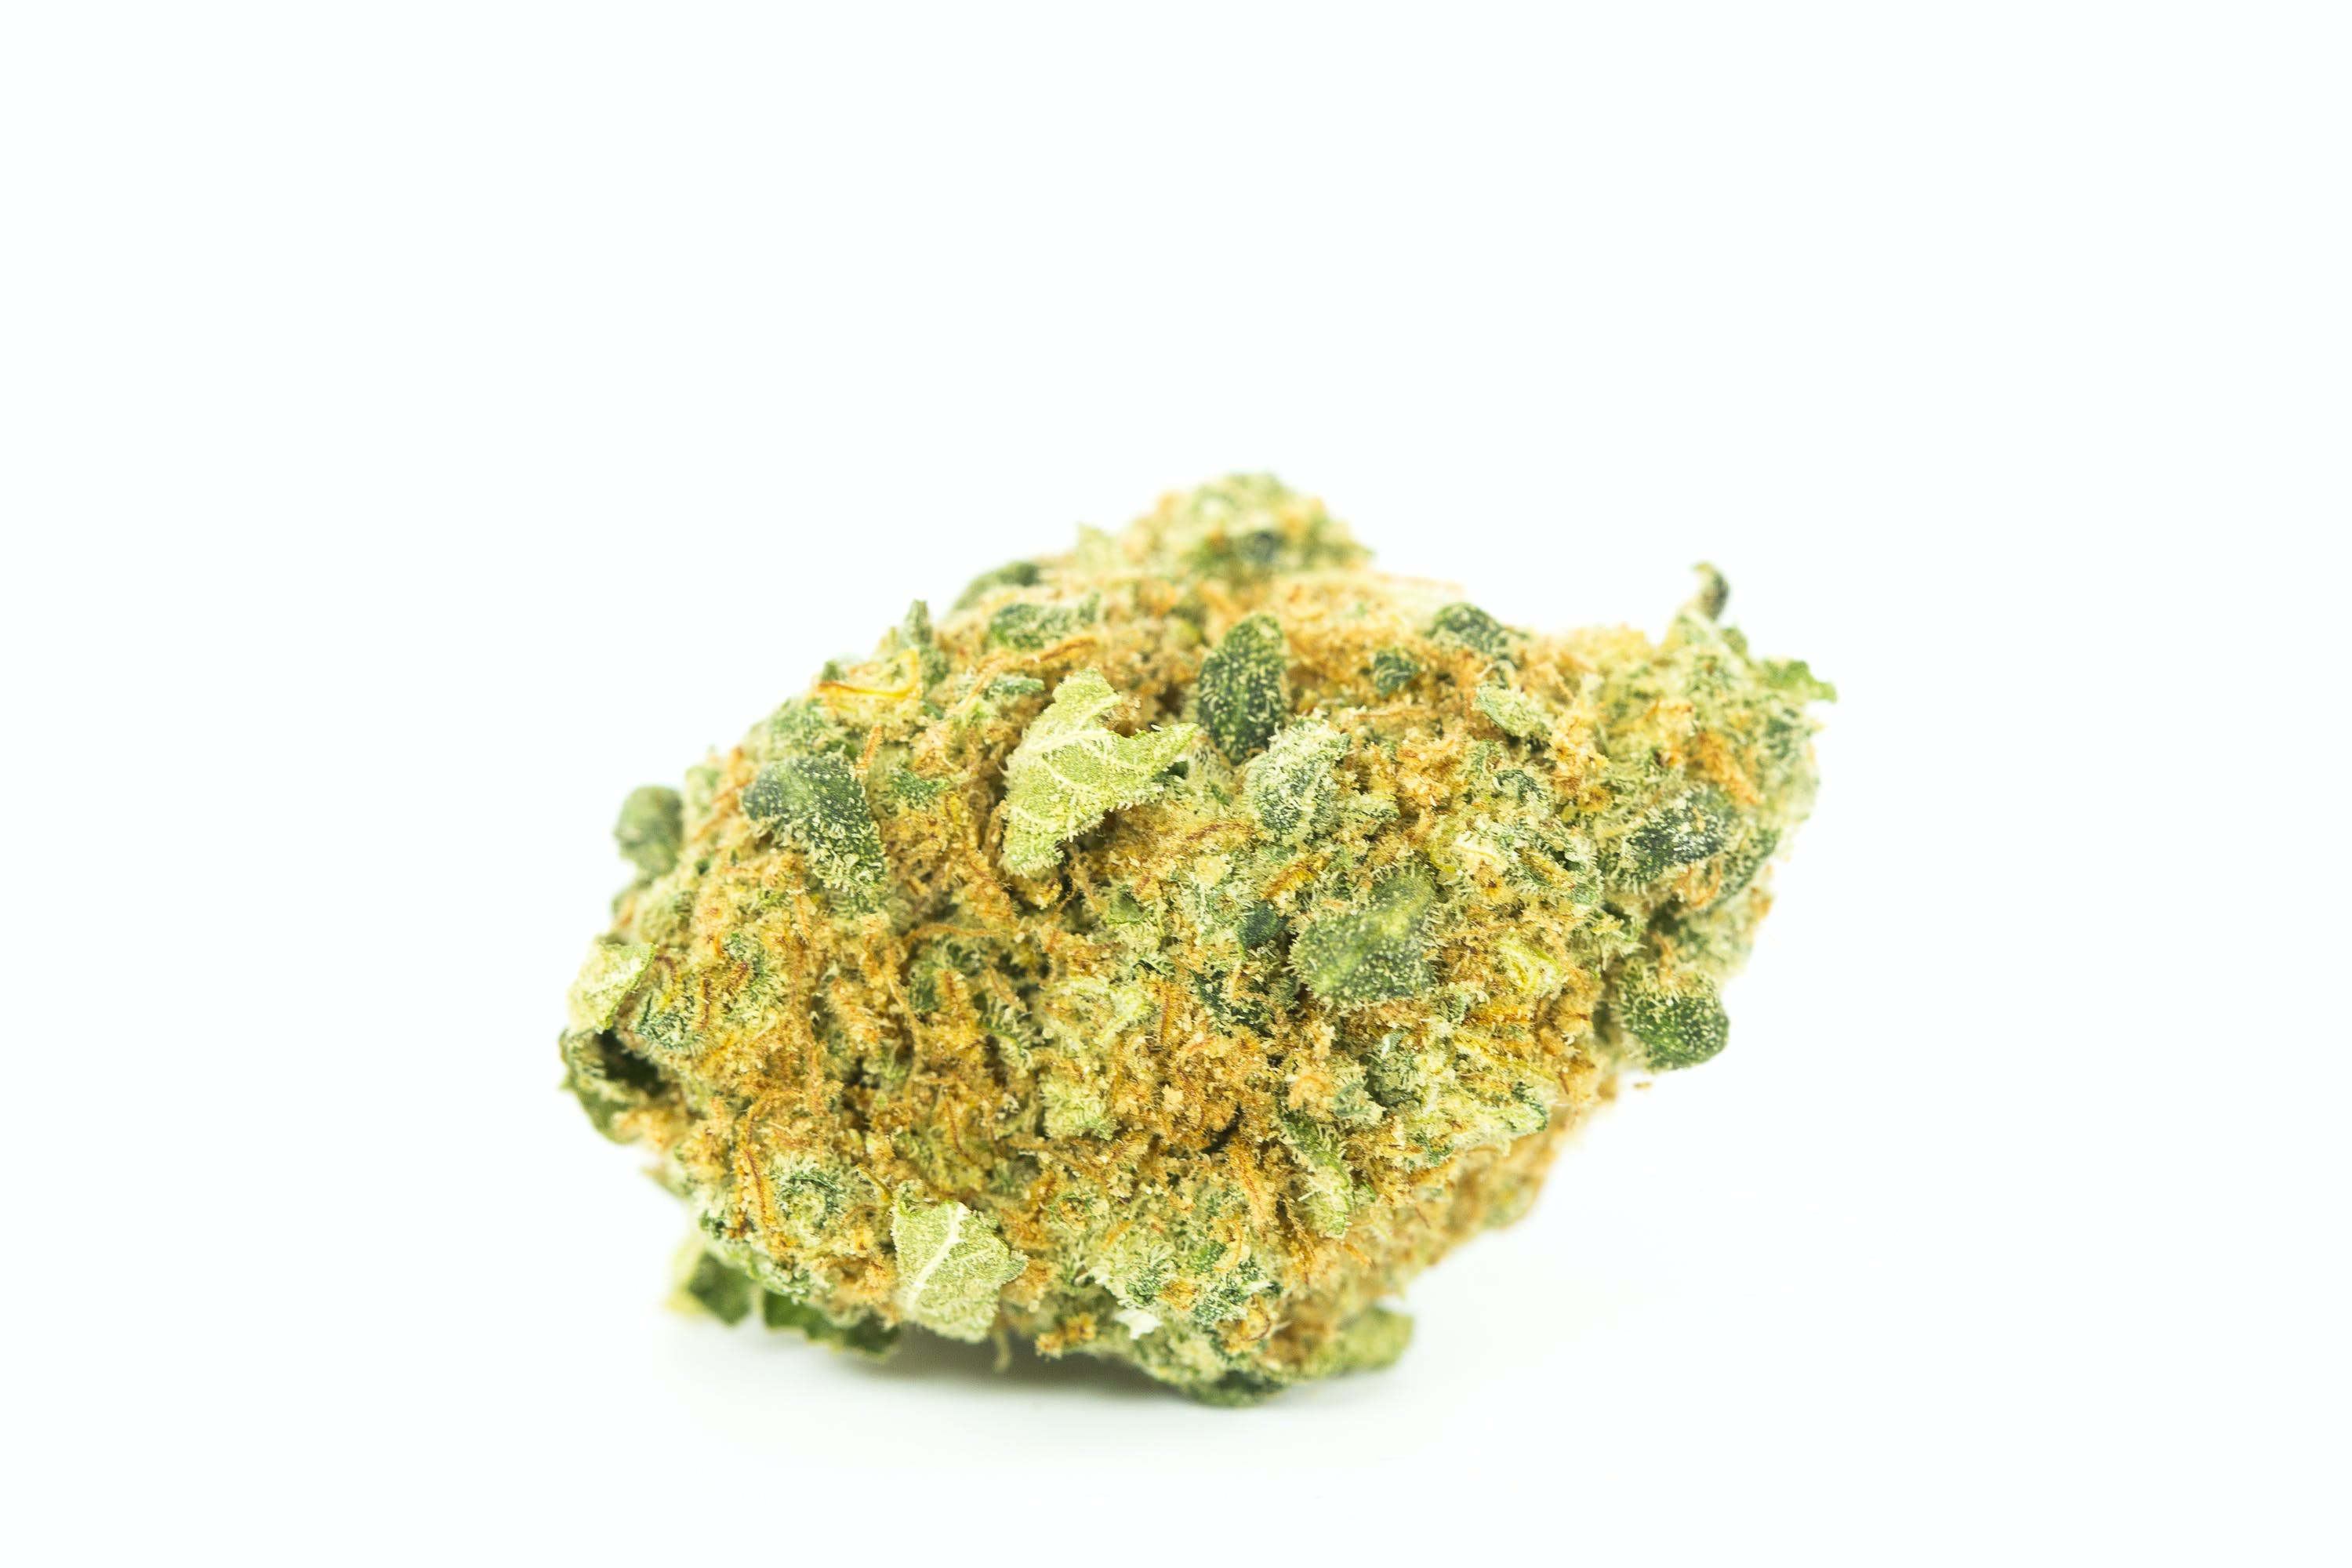 Tangerine Dream Weed; Tangerine Dream Cannabis Strain; Tangerine Dream Hybrid Marijuana Strain